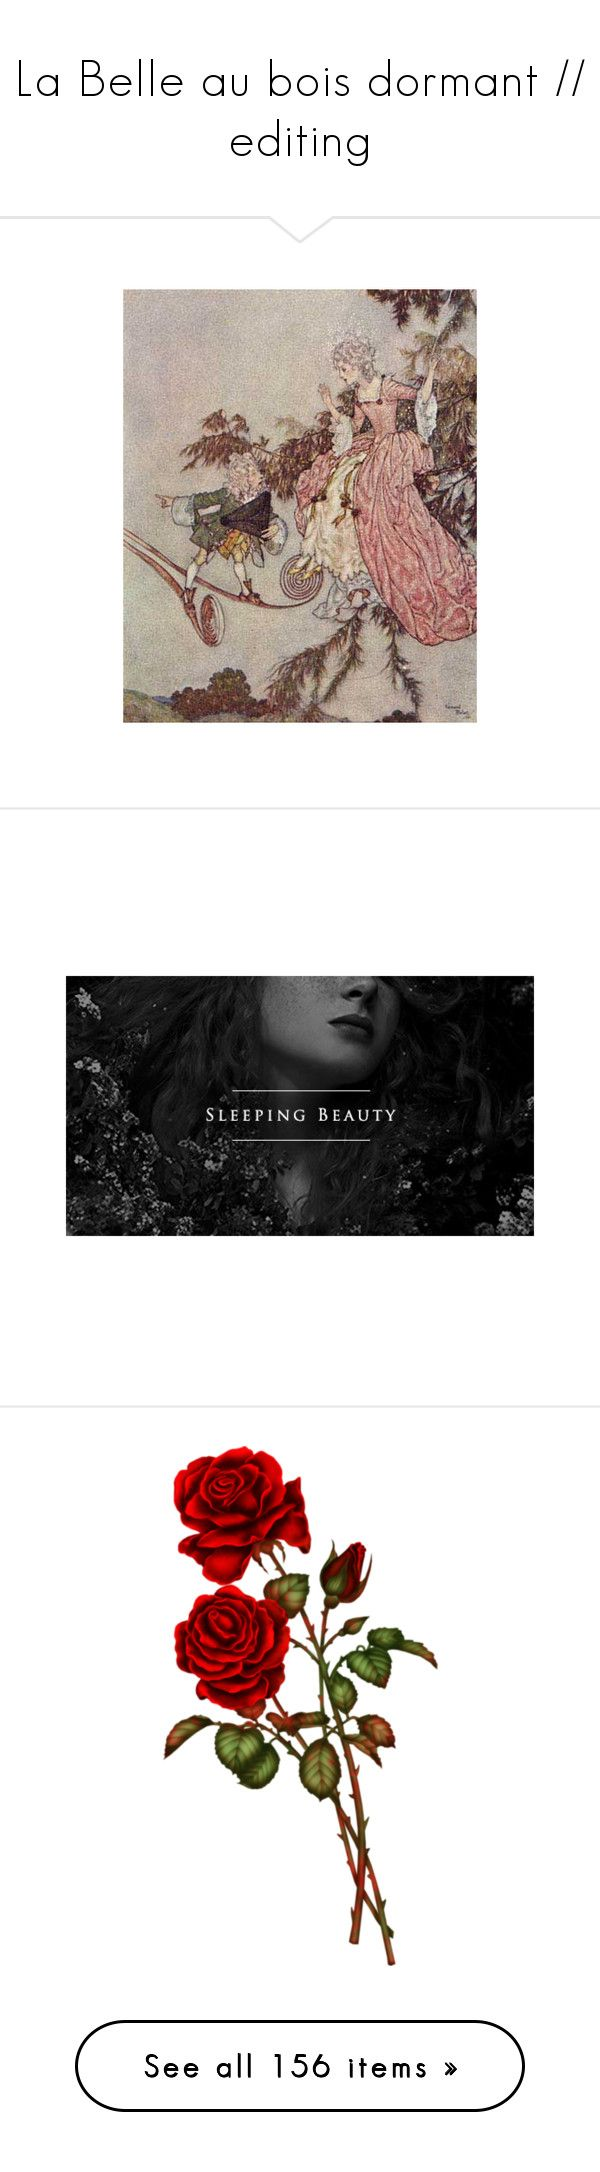 """""""La Belle au bois dormant // editing"""" by drownedinmoonlight ❤ liked on Polyvore featuring backgrounds, pictures, sleeping beauty, art, illustration, fillers, flowers, red, rose and castle"""